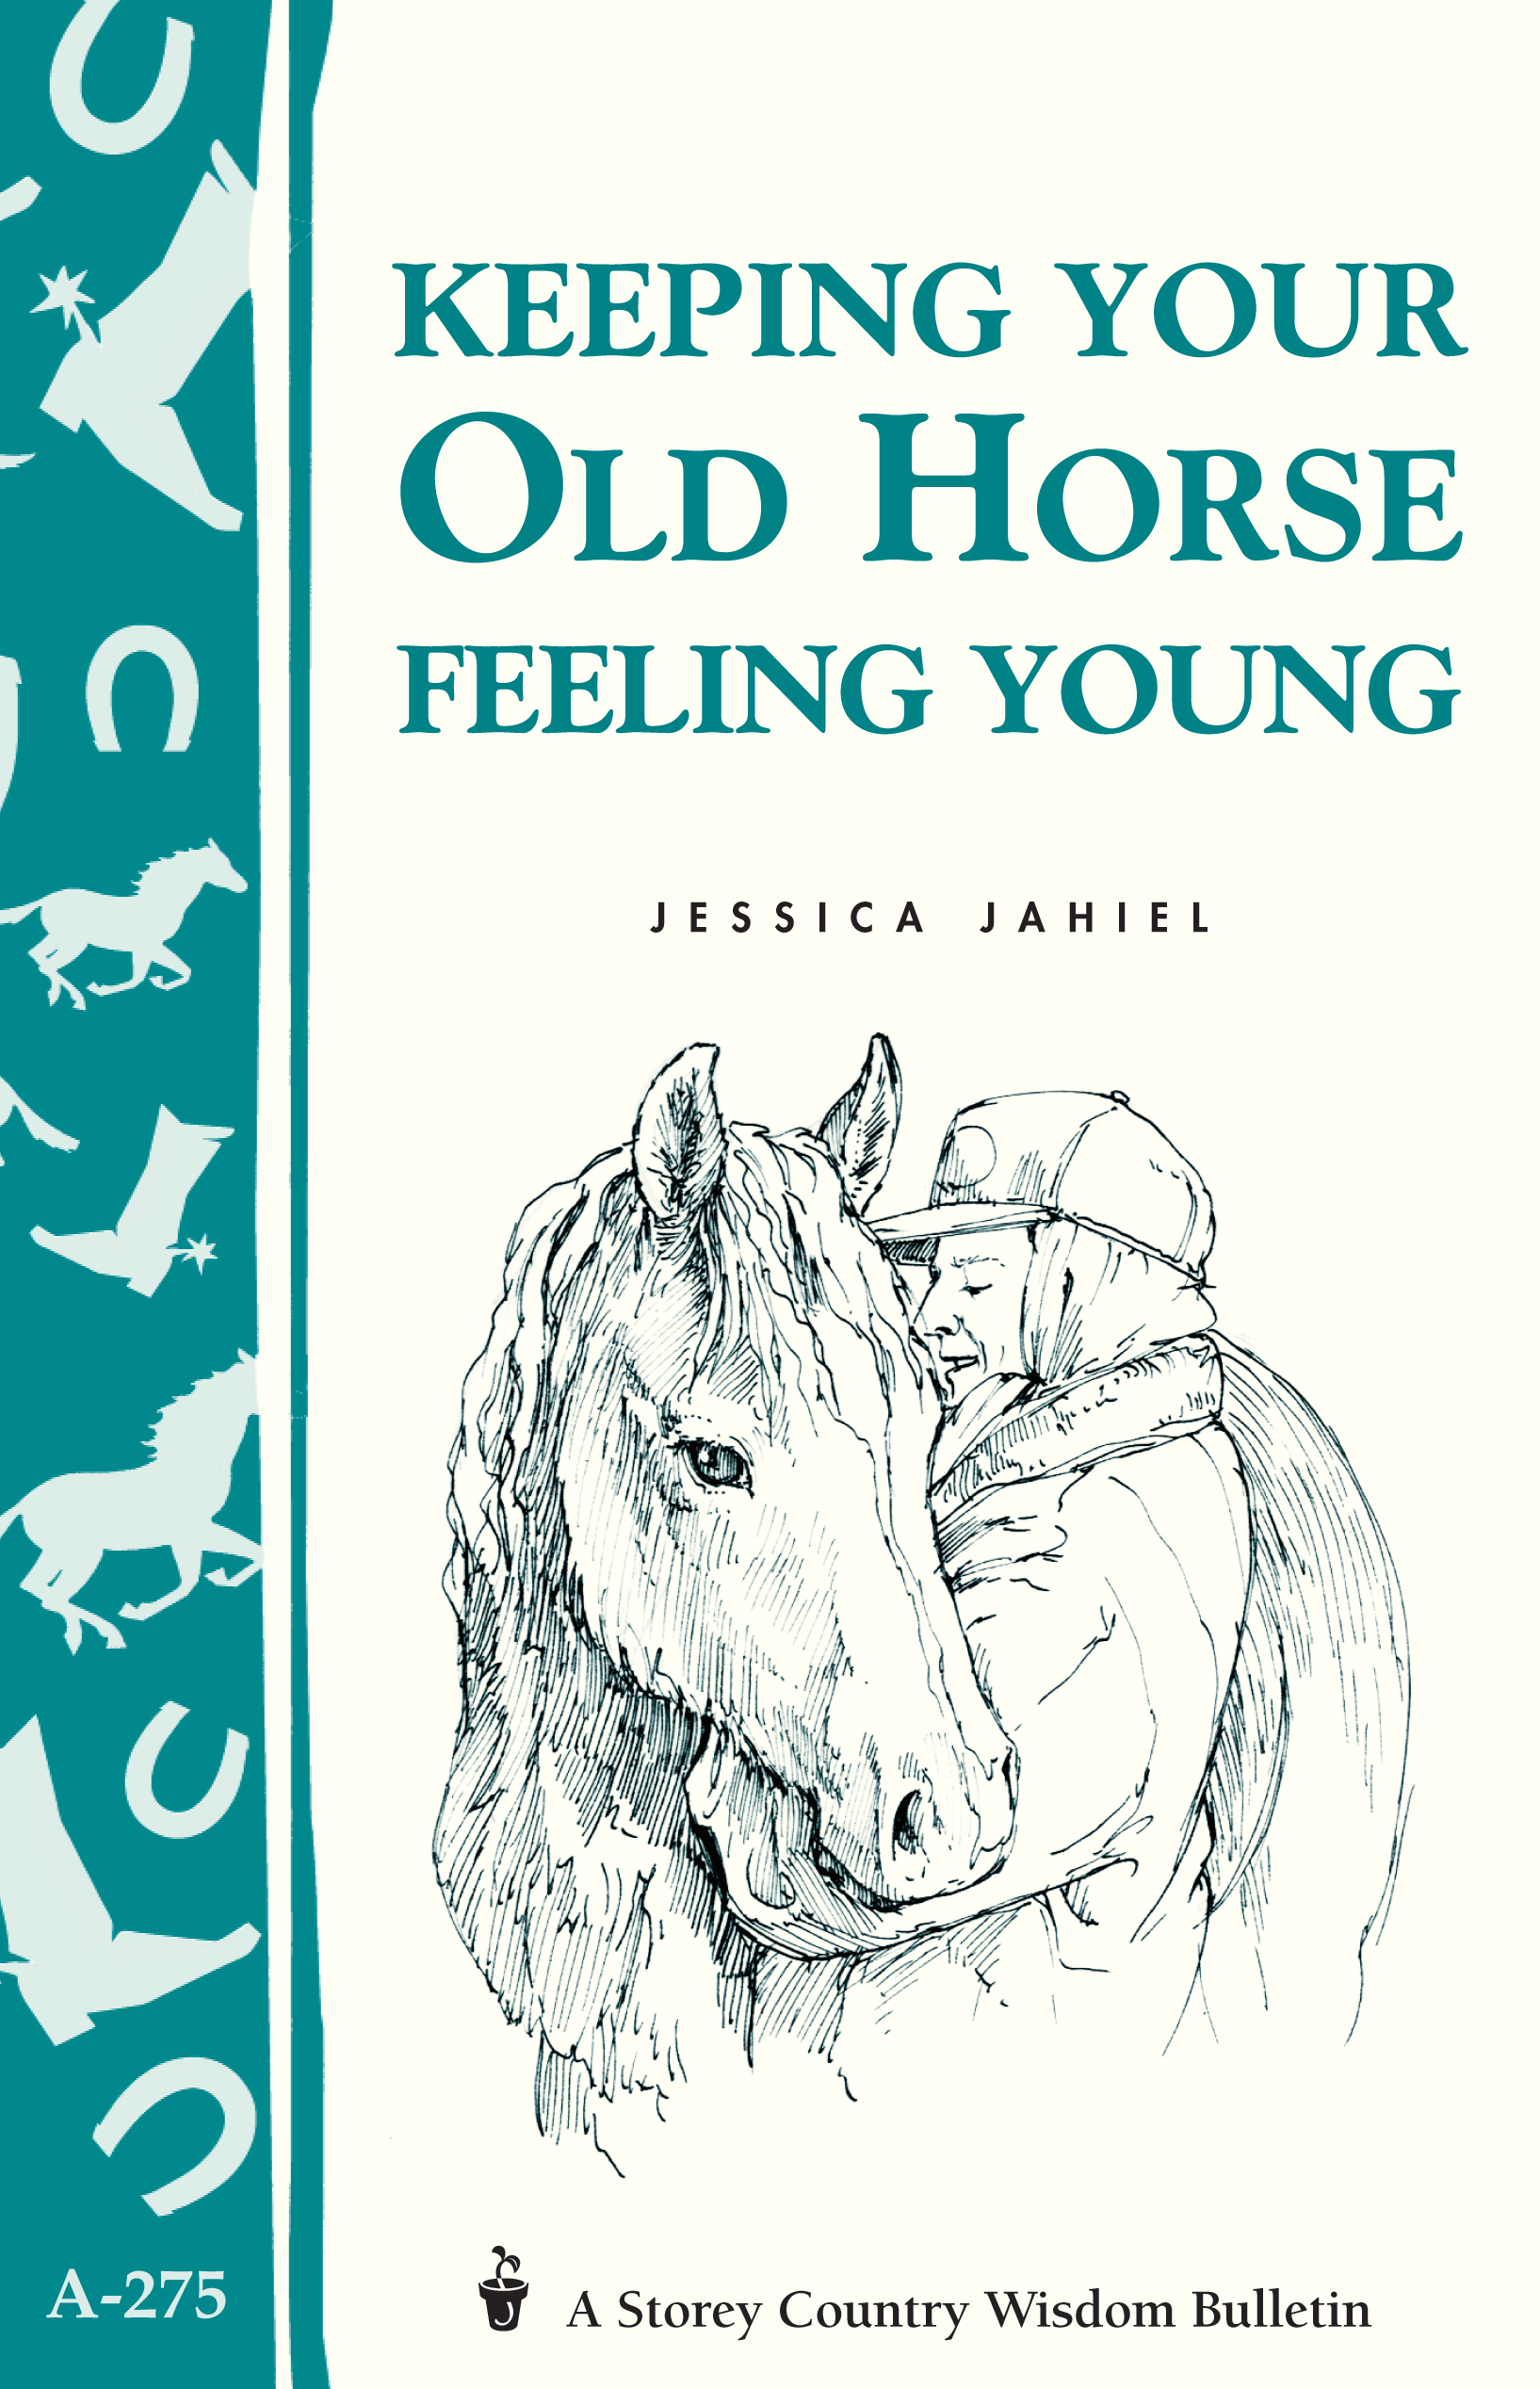 Keeping Your Old Horse Feeling Young Storey's Country Wisdom Bulletin A-275 - Jessica Jahiel